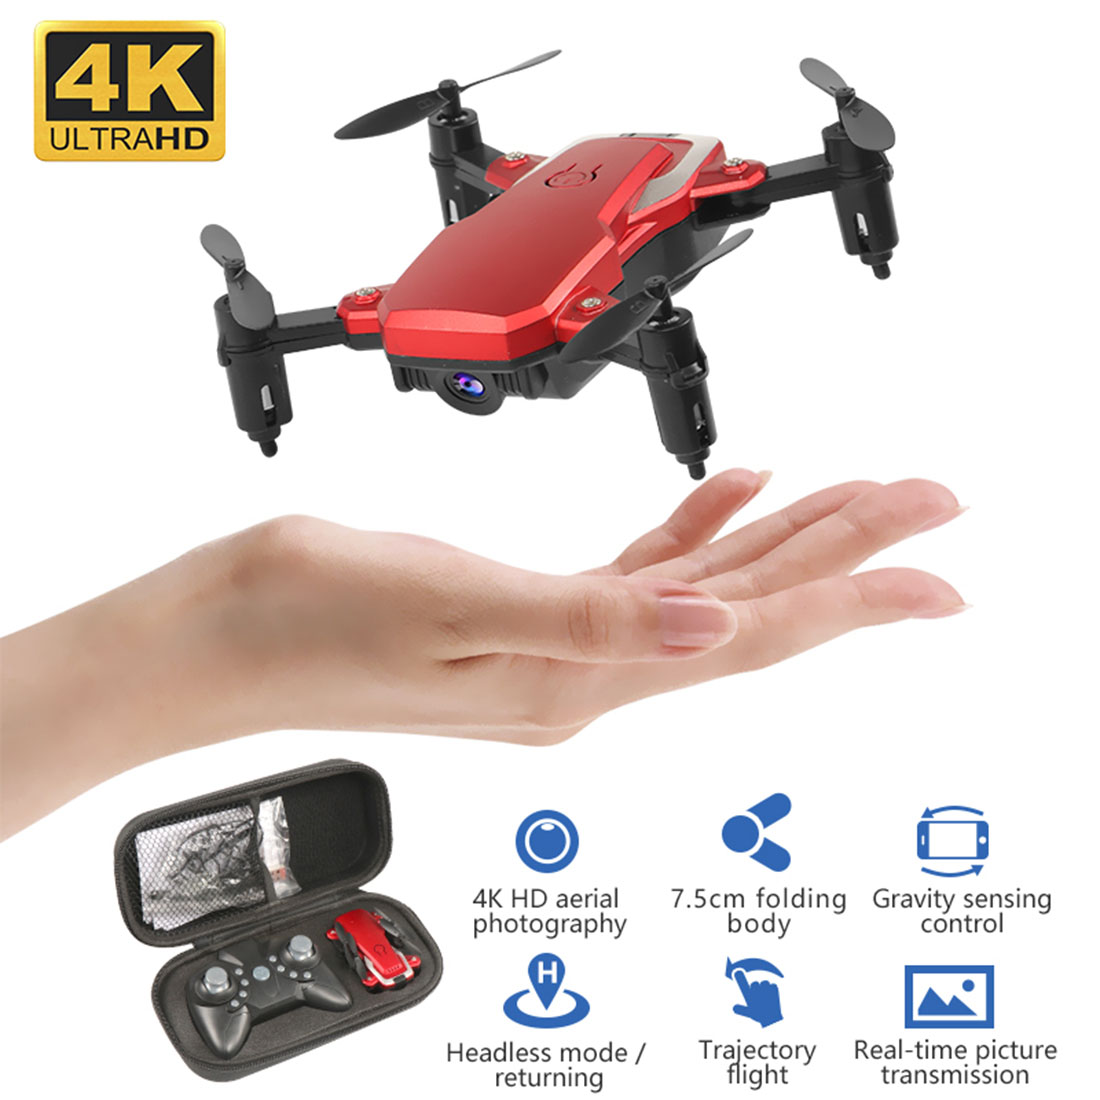 Foldable Mini Drone K1 WiFi FPV HD <font><b>Camera</b></font> 0.3MP 2.0MP 5.0MP 4K Altitude Hold Aerial <font><b>Video</b></font> 3D Flips RC Quadcopter Kids Toy image